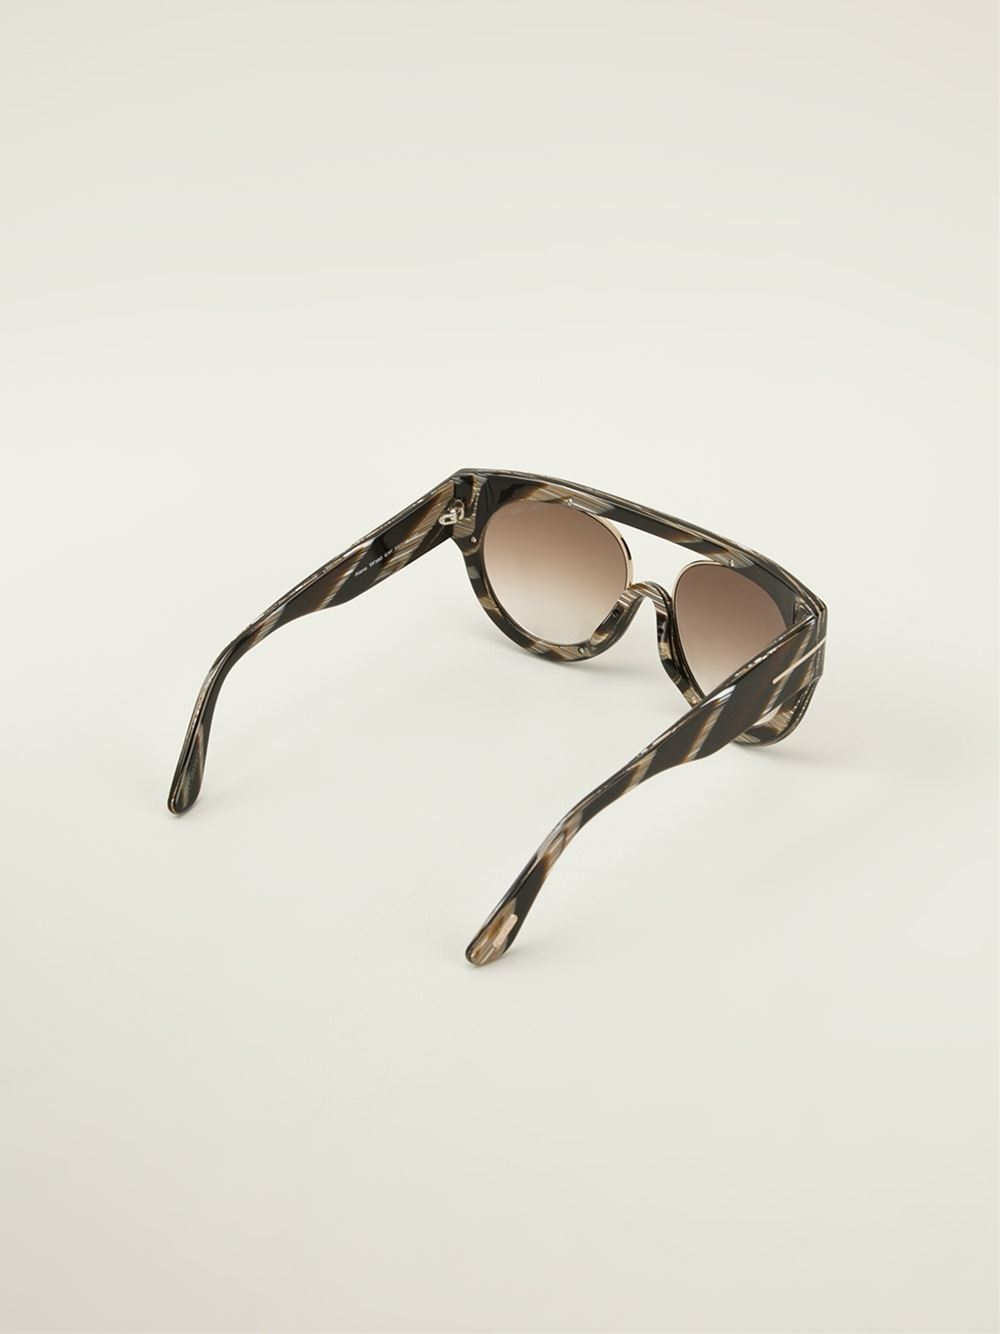 Tom Ford Flat Top Sunglasses in Brown